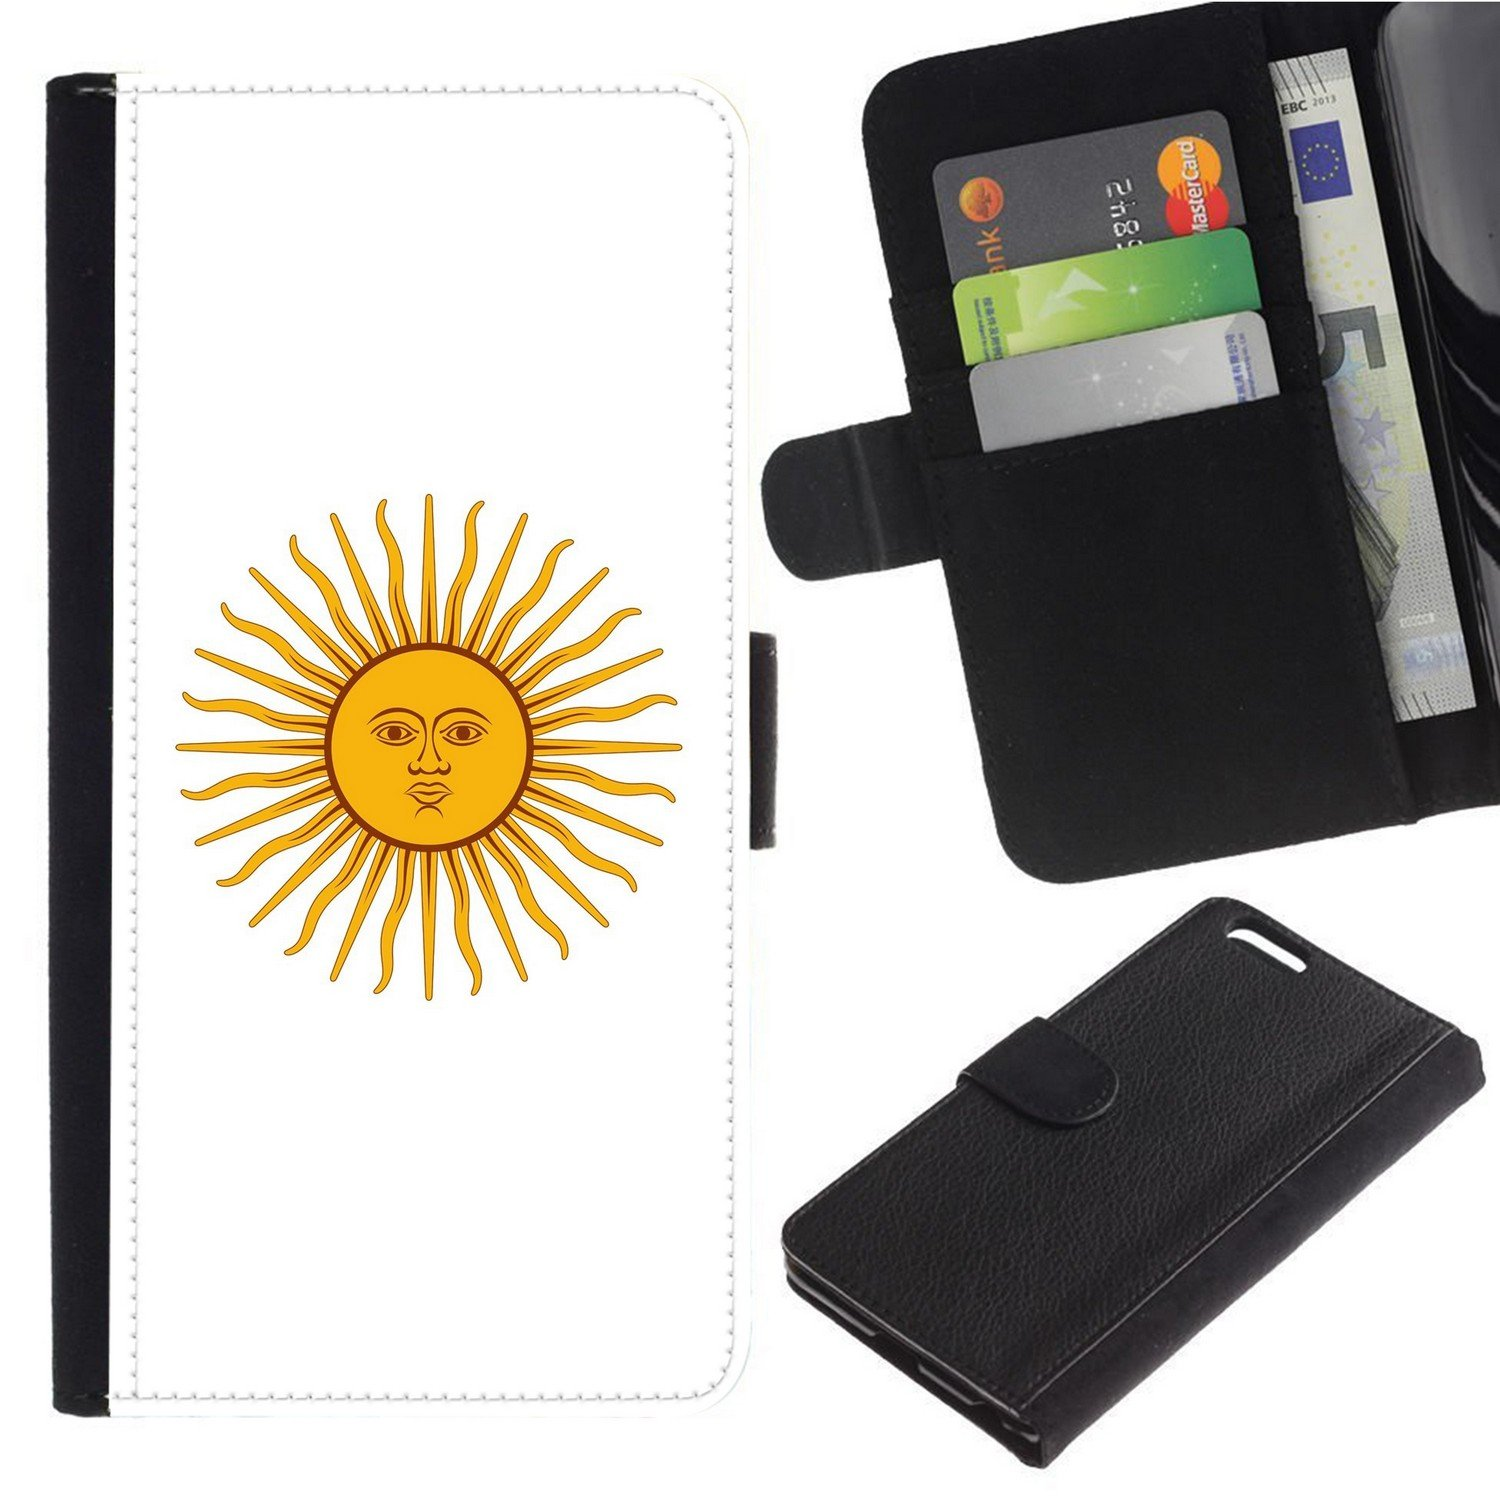 [Solar Design from Flag of Argentina] For Motorola NEXUS 6/Moto X/Moto X Pro, Flip Leather Wallet Holsters Pouch Skin Case